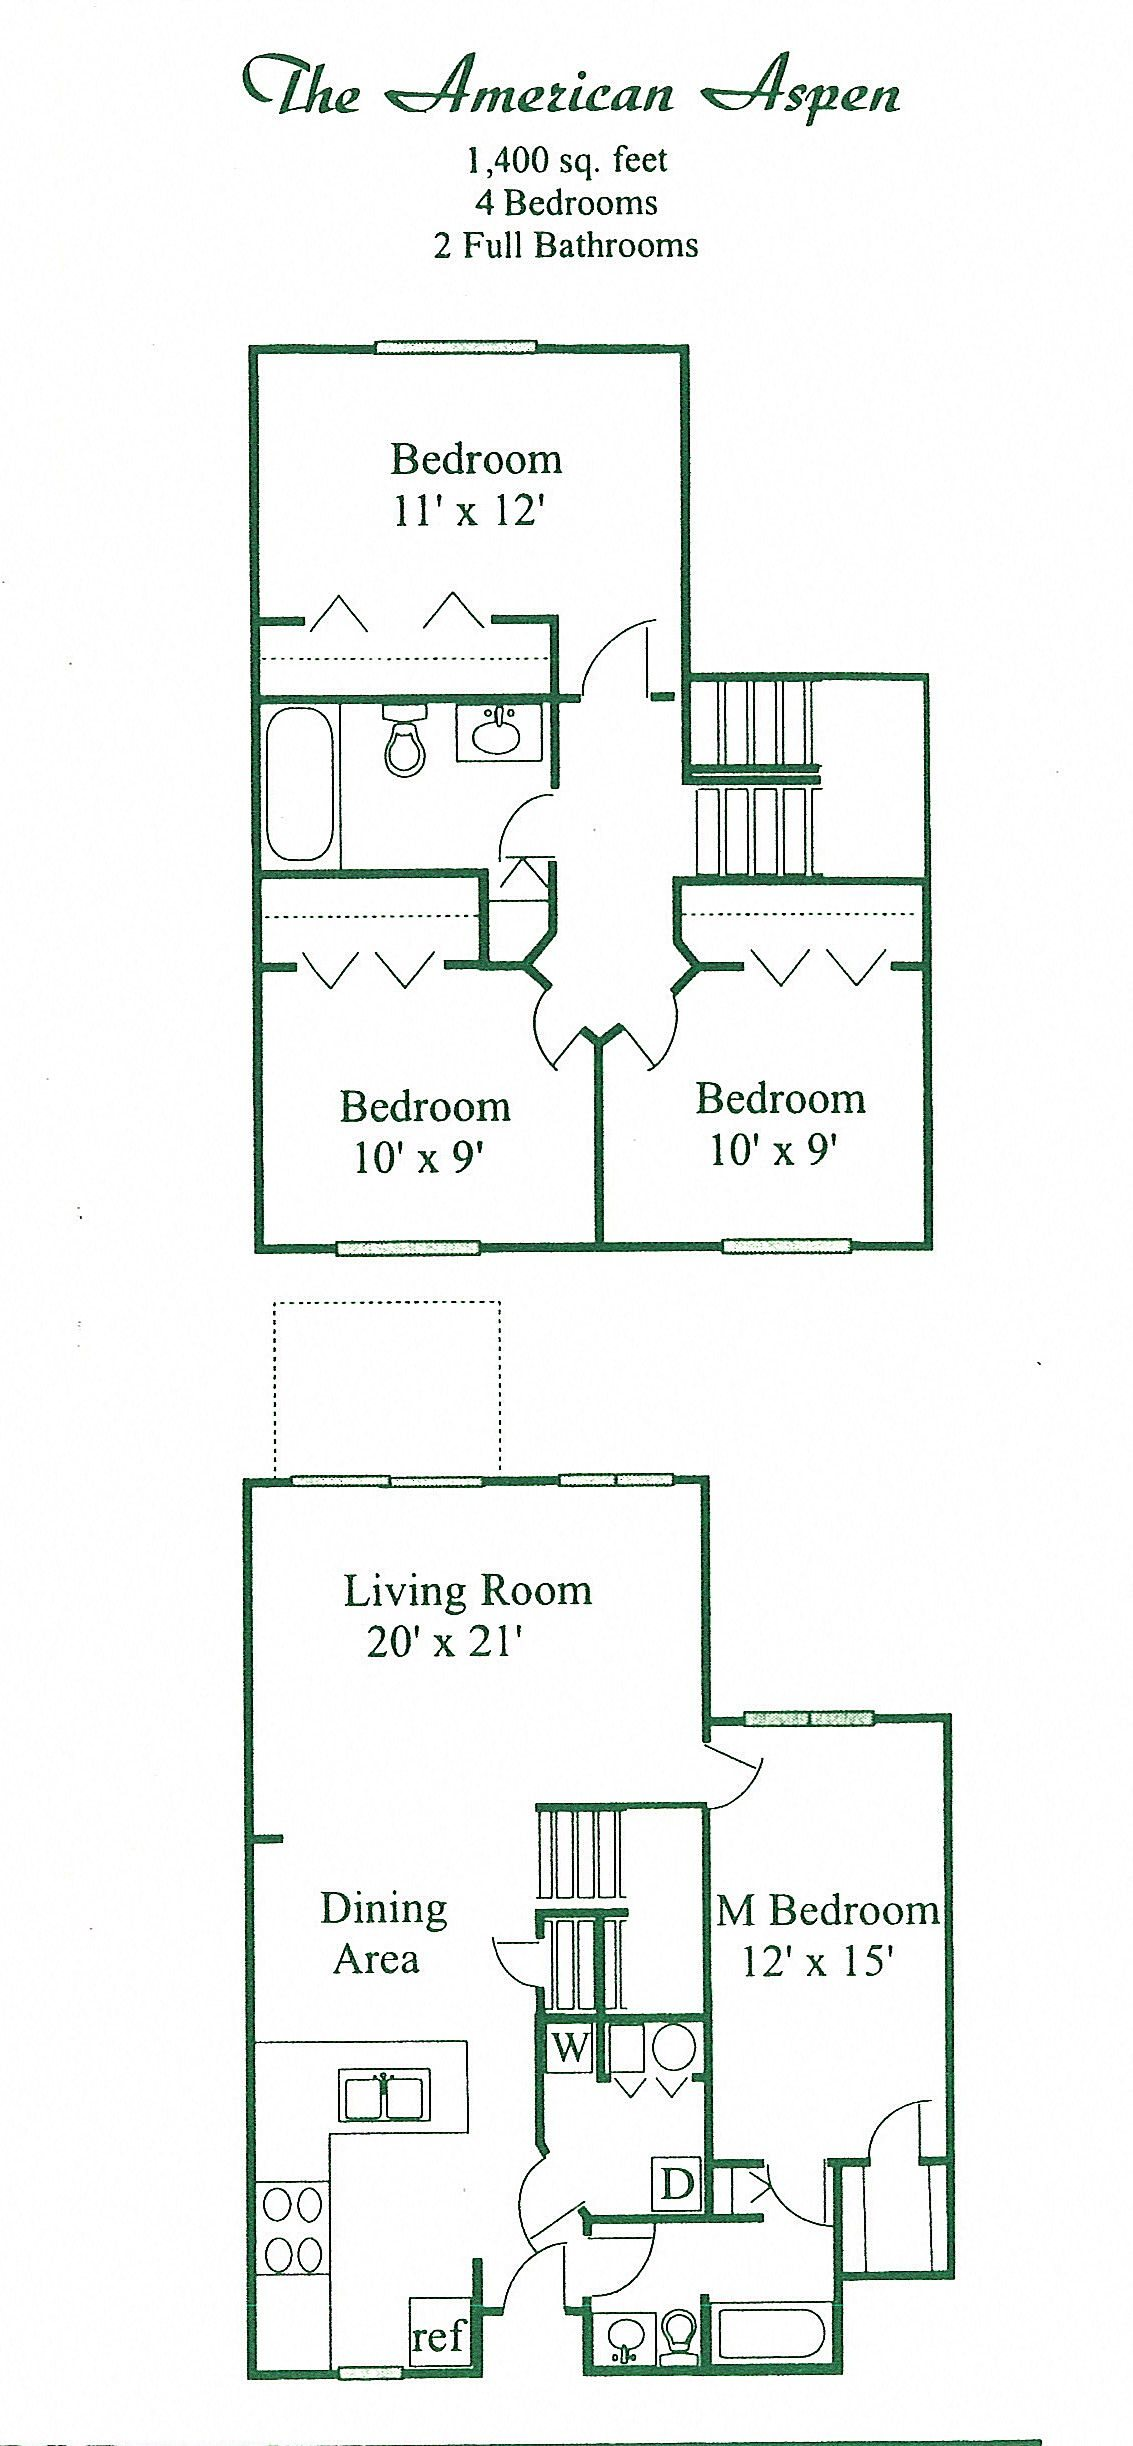 The American Aspen Floor Plan 4